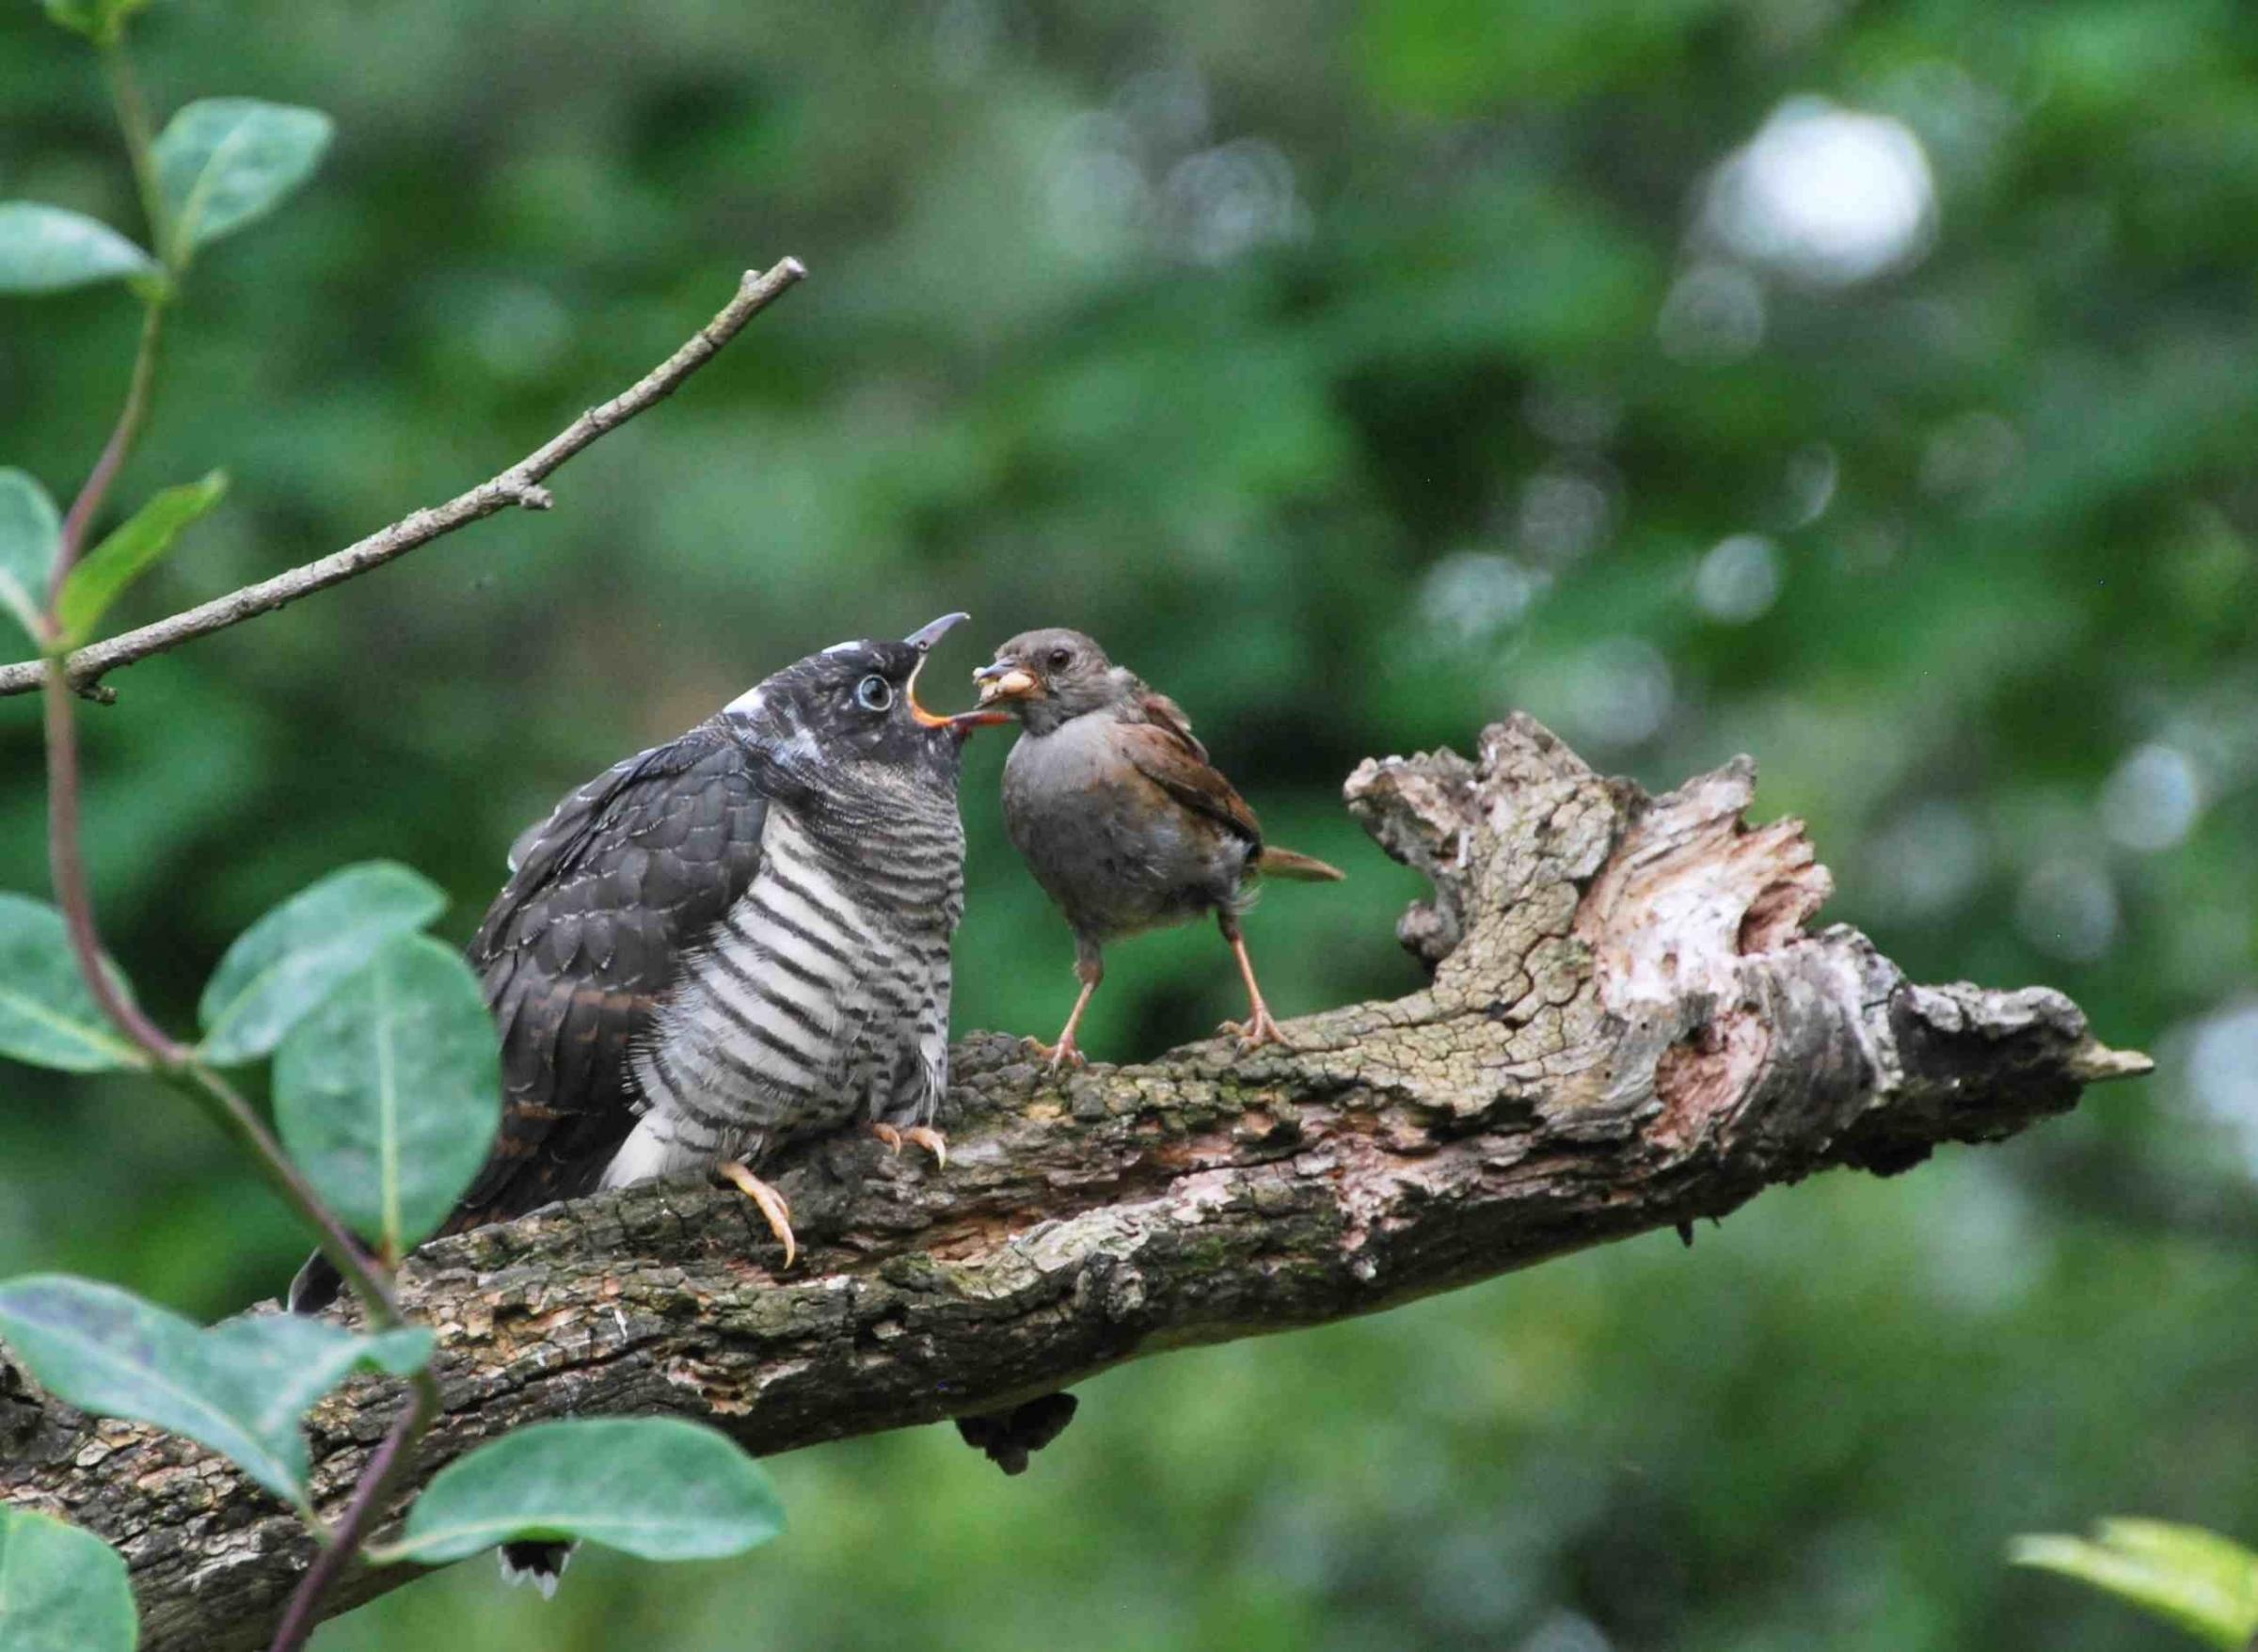 READERS' VIEW: Steve Weighell and his wife, Joan, got an amazing view for 20 minutes in early August of a young cuckoo being fed by its adoptive parent - a dunnock - just six yards from their window in Middleton St George, near Darlington.